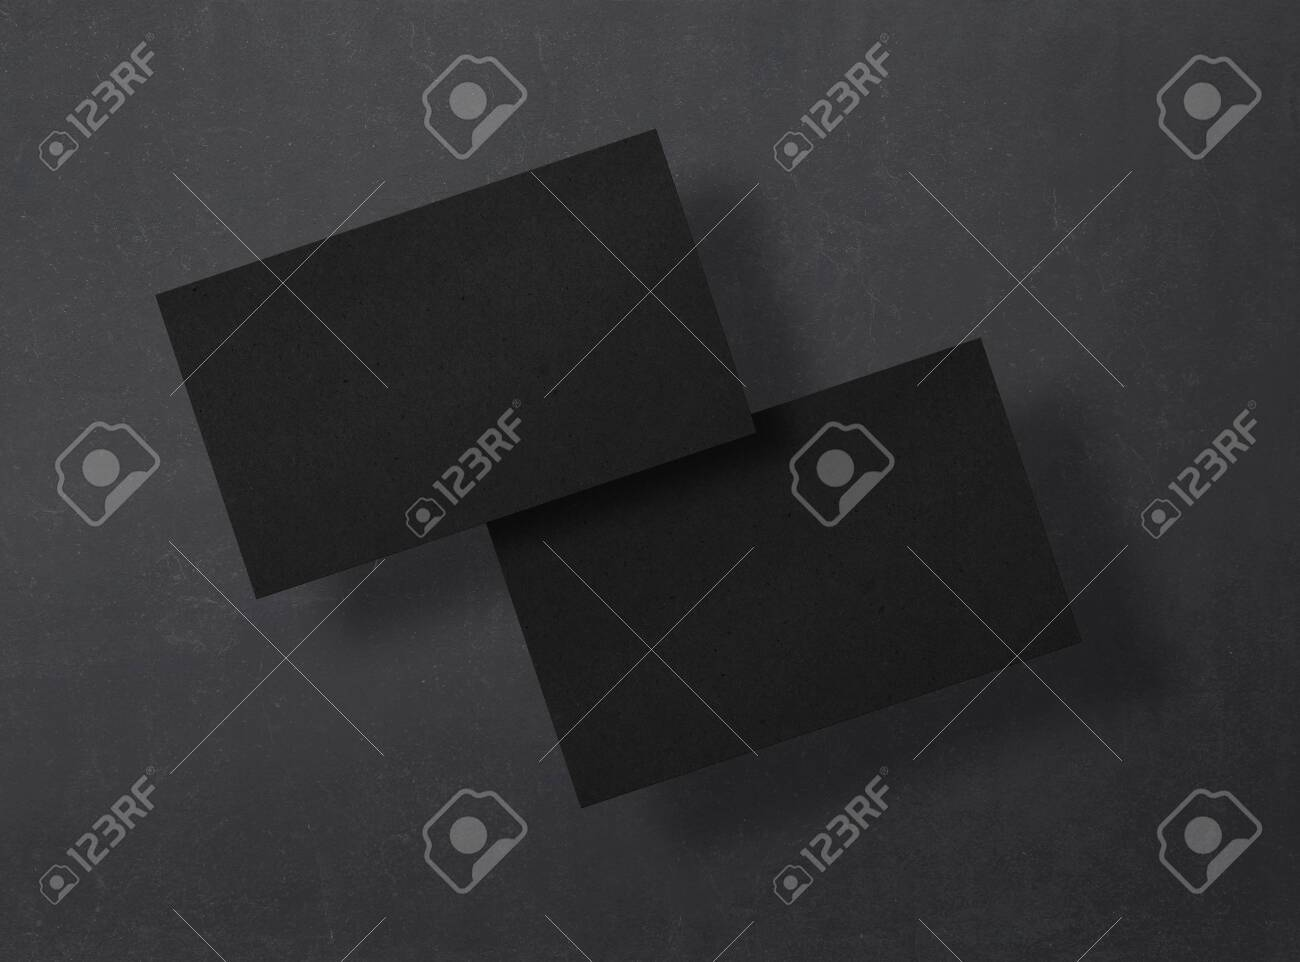 Black business cards on a black background. Mockup. Corporate templates, identity design, company style. Top view. - 150177833